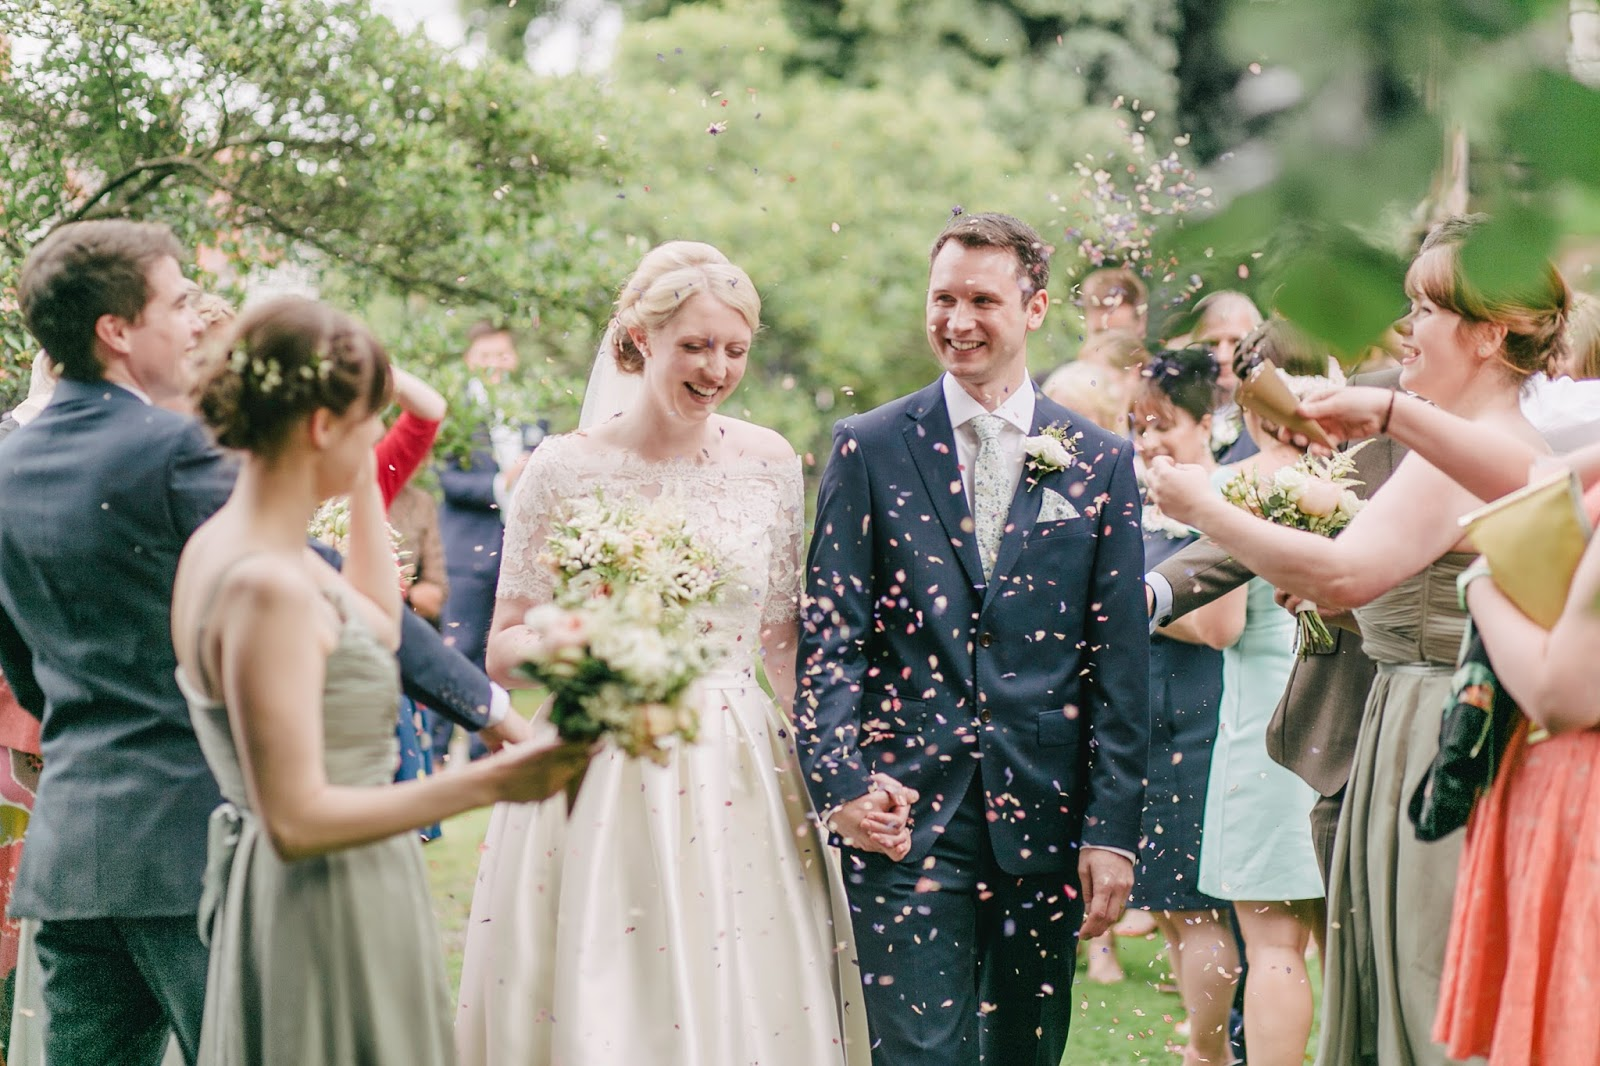 Bride & groom leaving their ceremony with guests throwing confetti